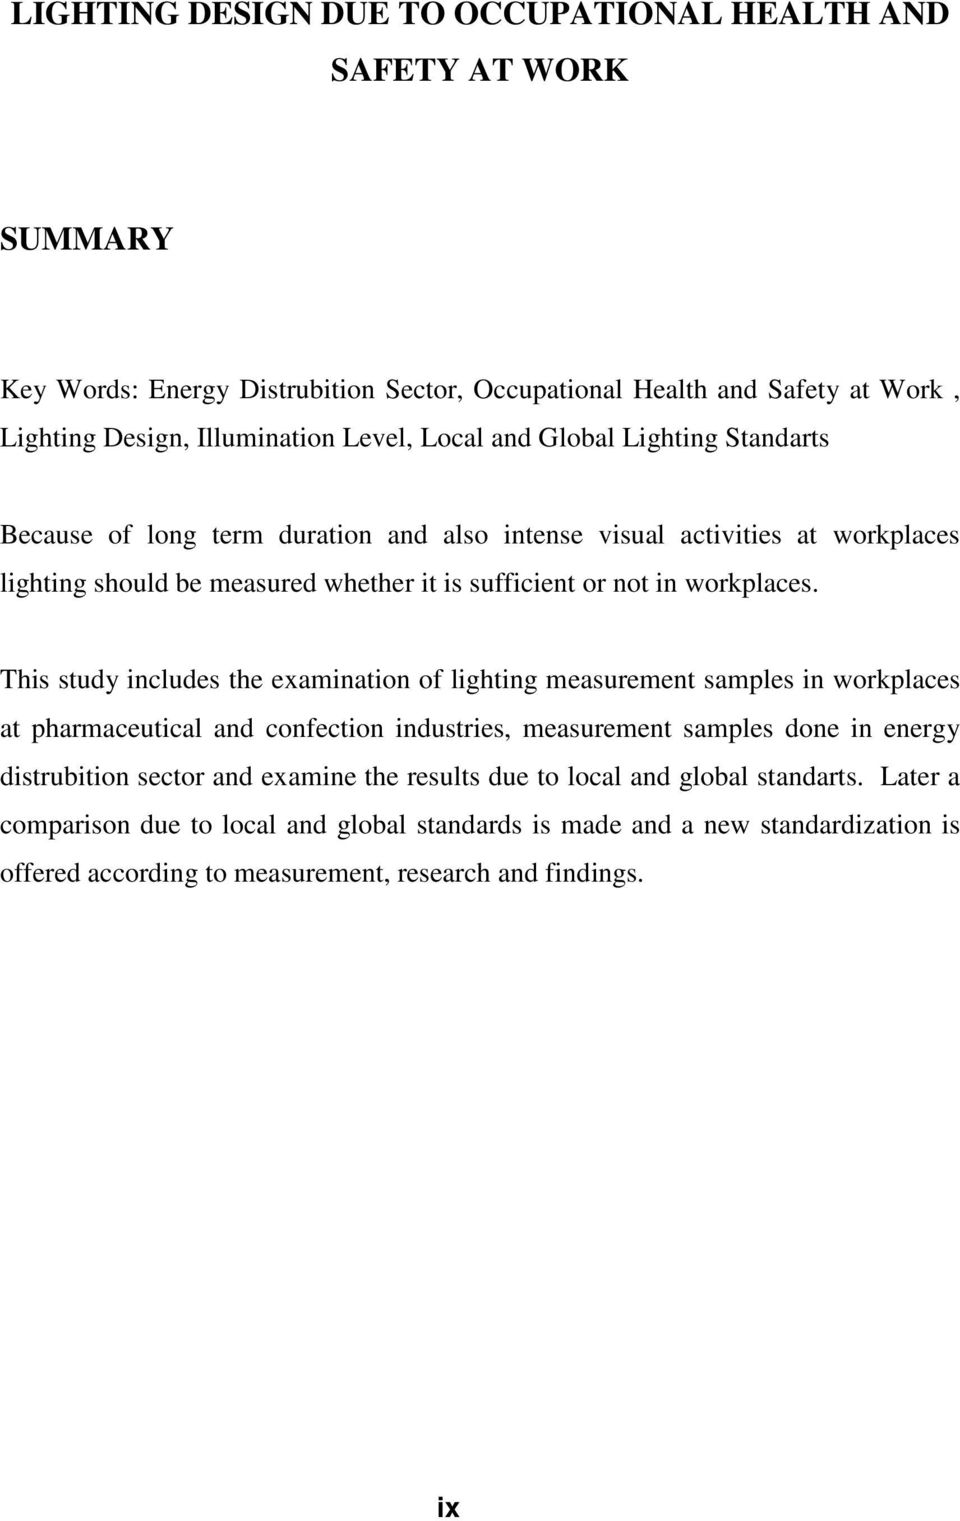 This study includes the examination of lighting measurement samples in workplaces at pharmaceutical and confection industries, measurement samples done in energy distrubition sector and